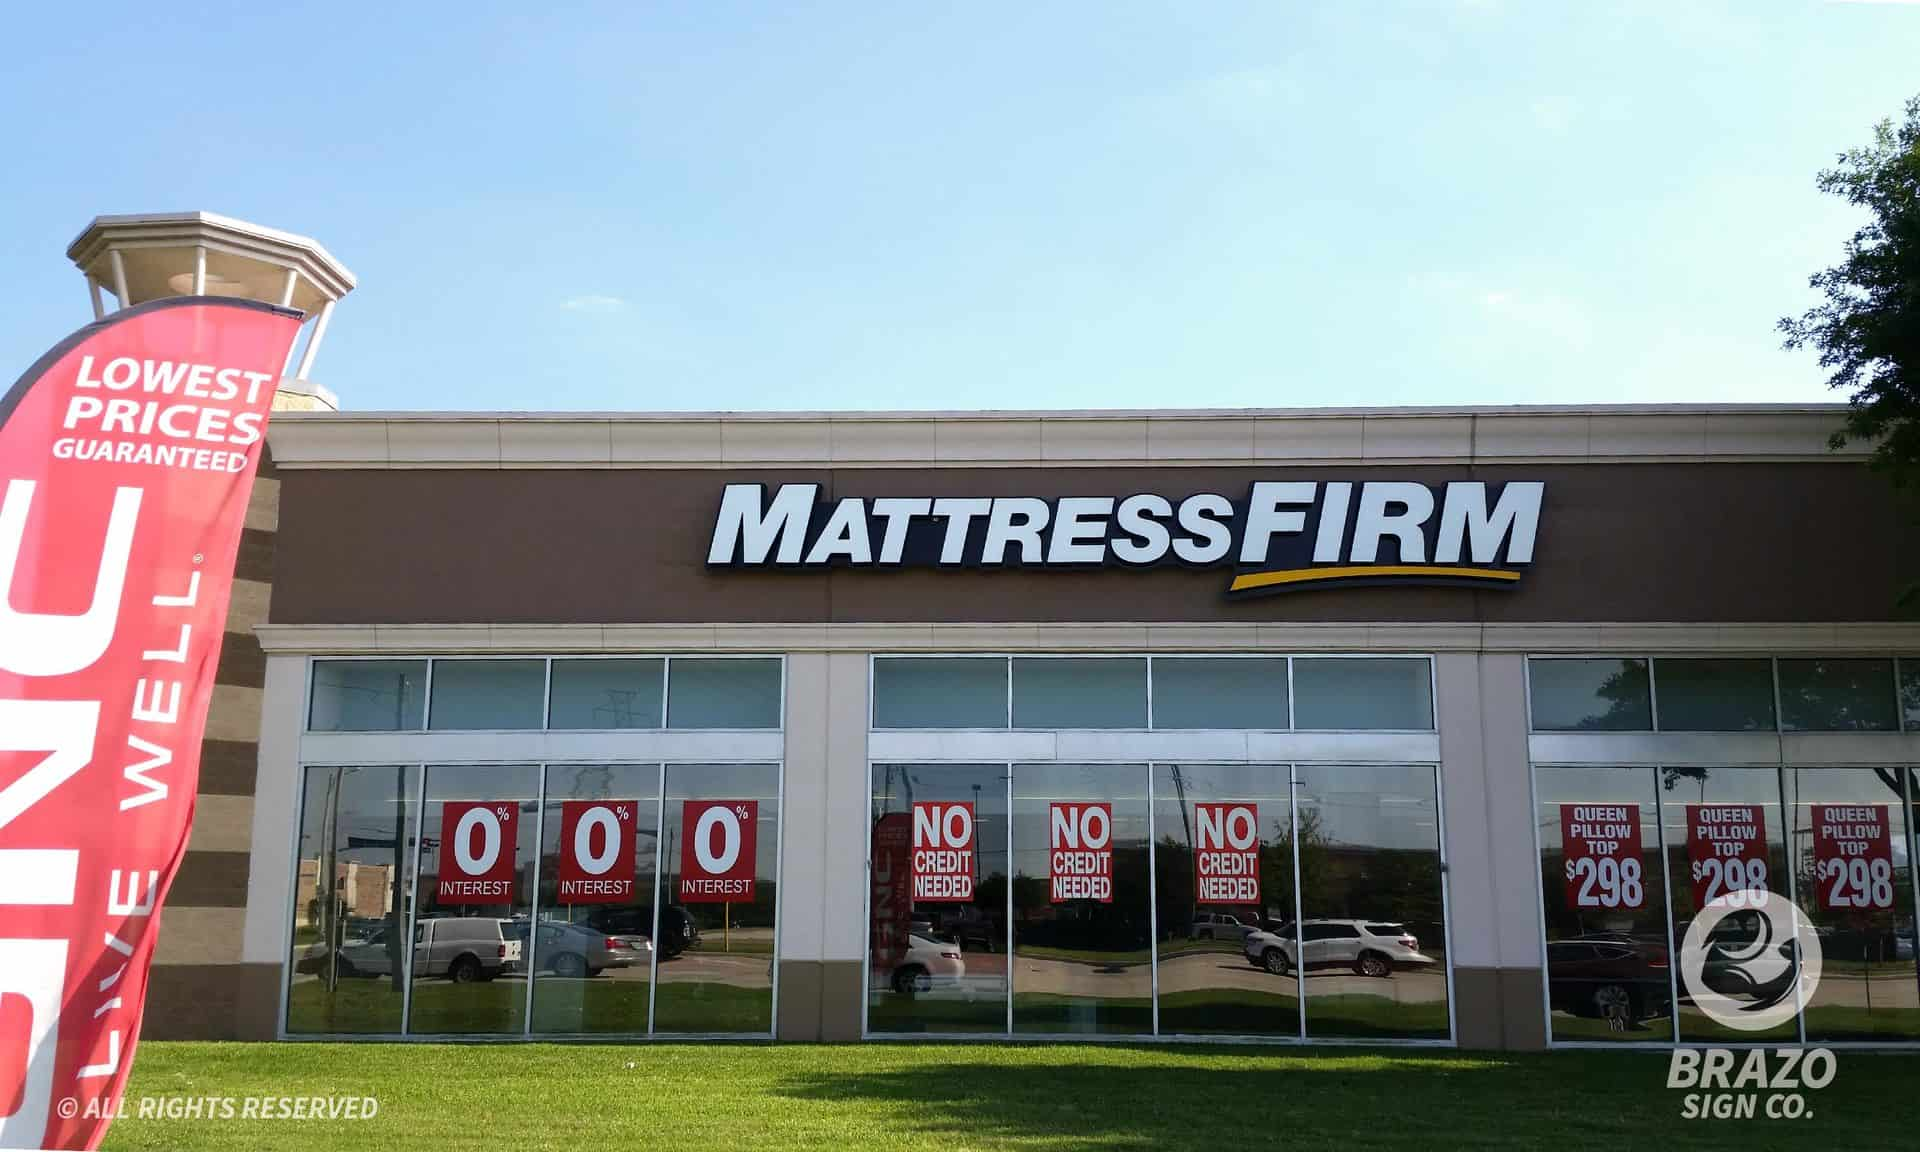 business-signs-Mattress-Firm-houston-texas-illuminated-channel-letters